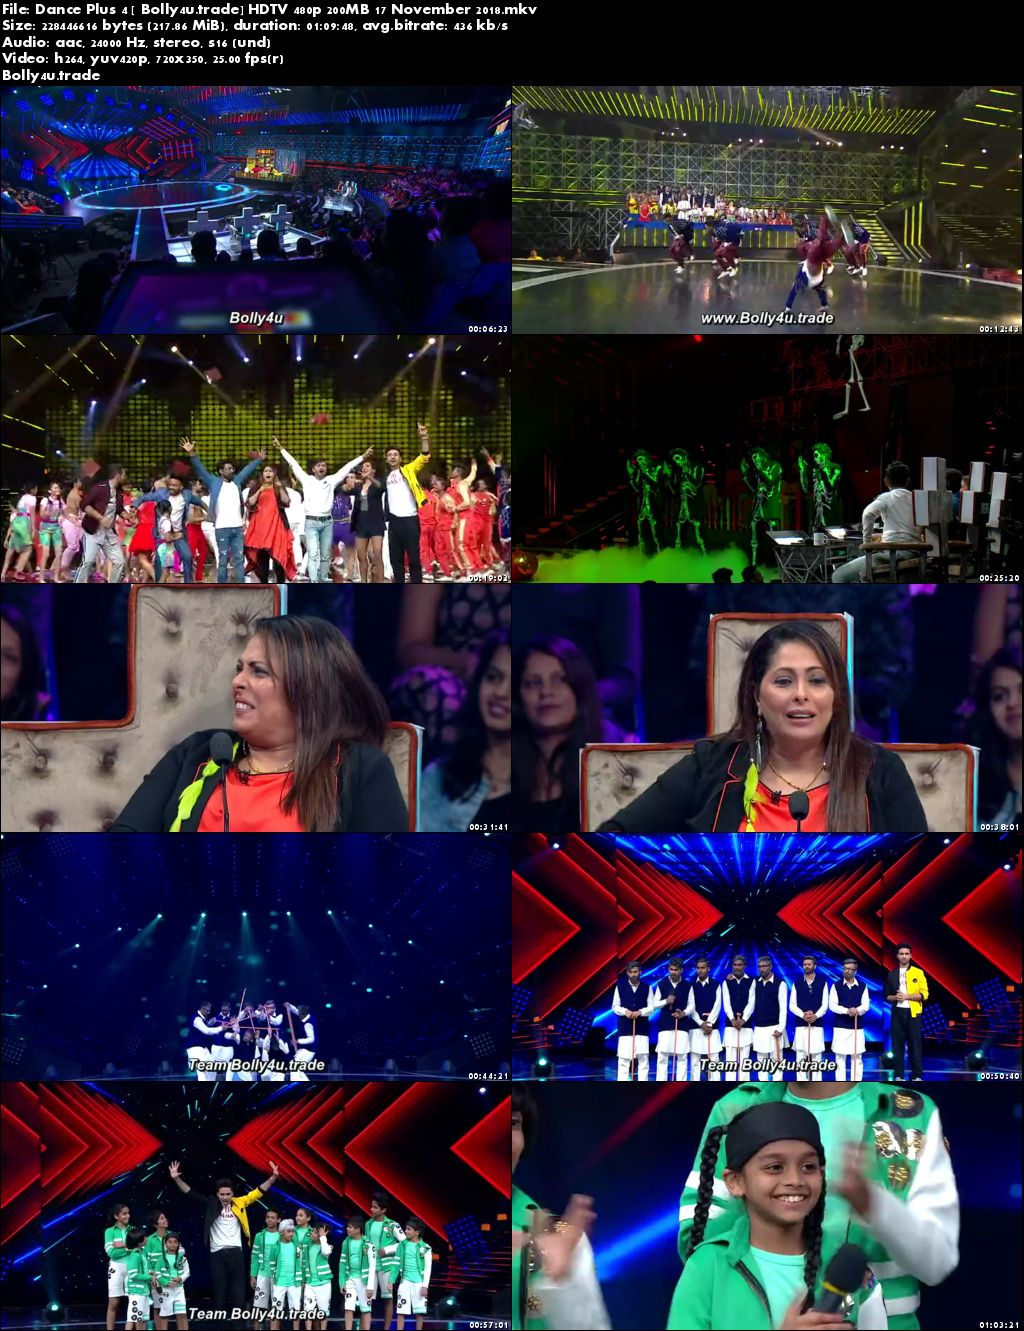 Dance Plus Season 4 HDTV 480p 200MB 17 November 2018 Download